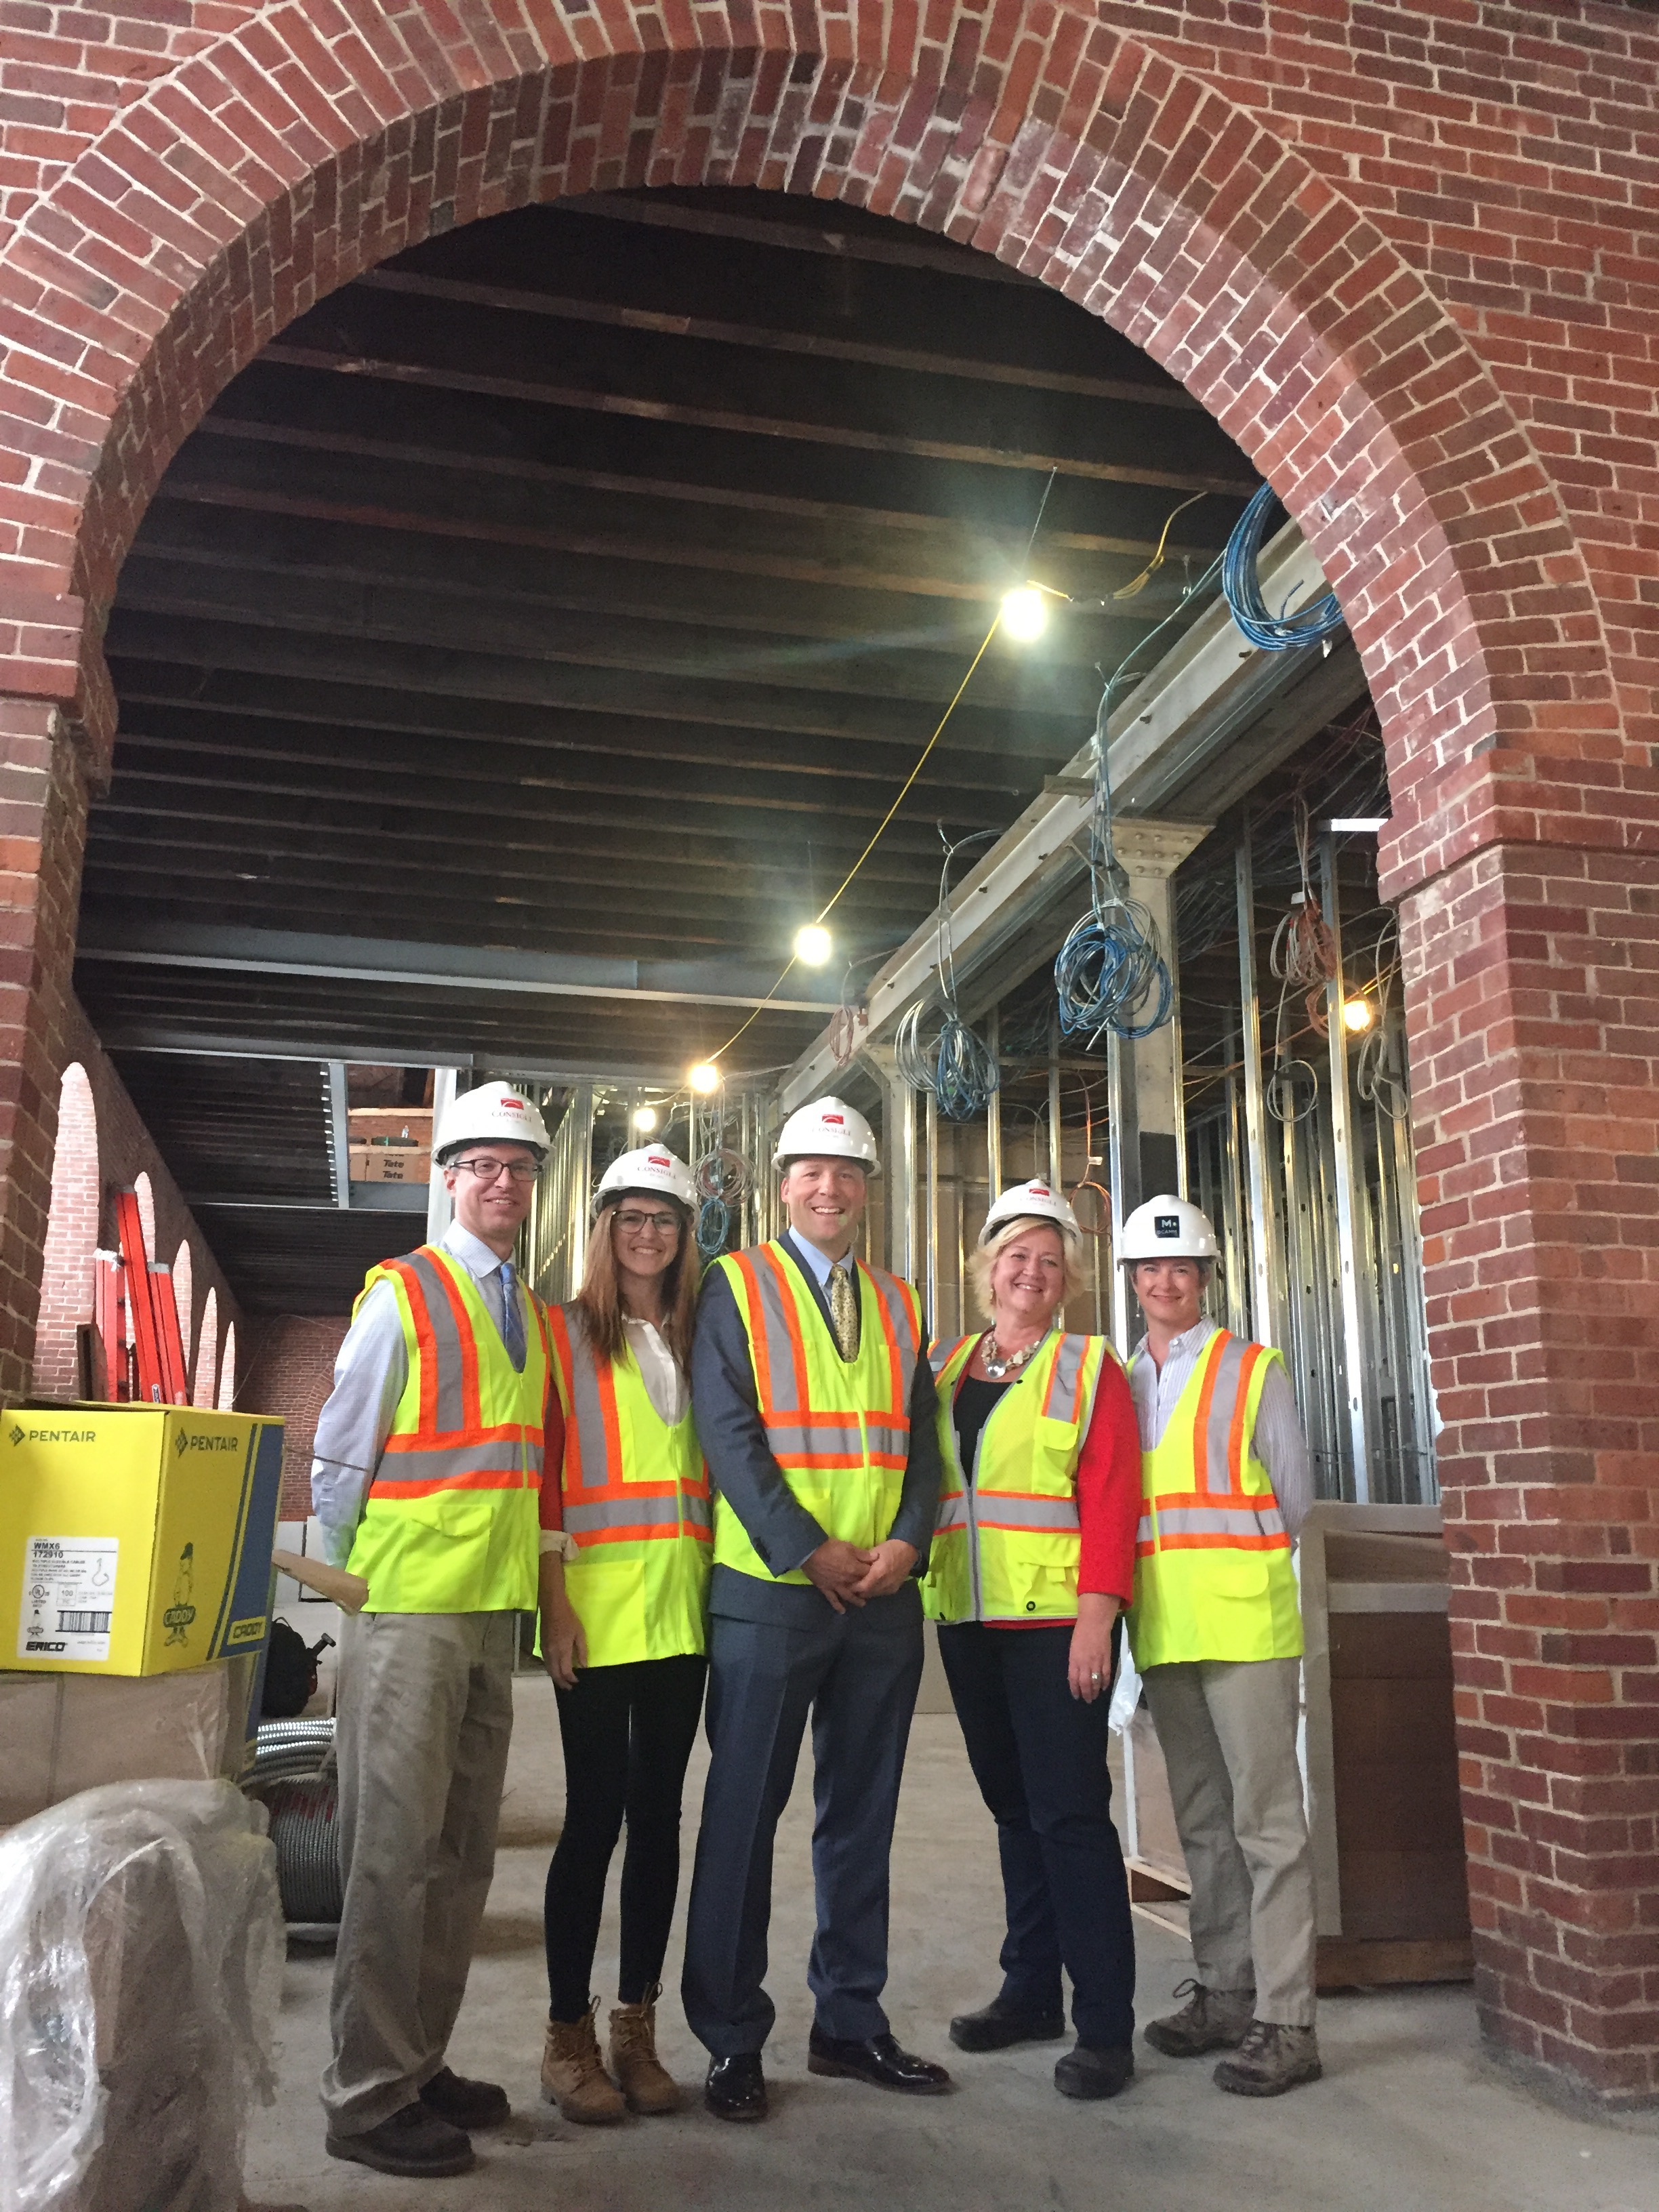 President Cook and others pose under an archway in Building 19